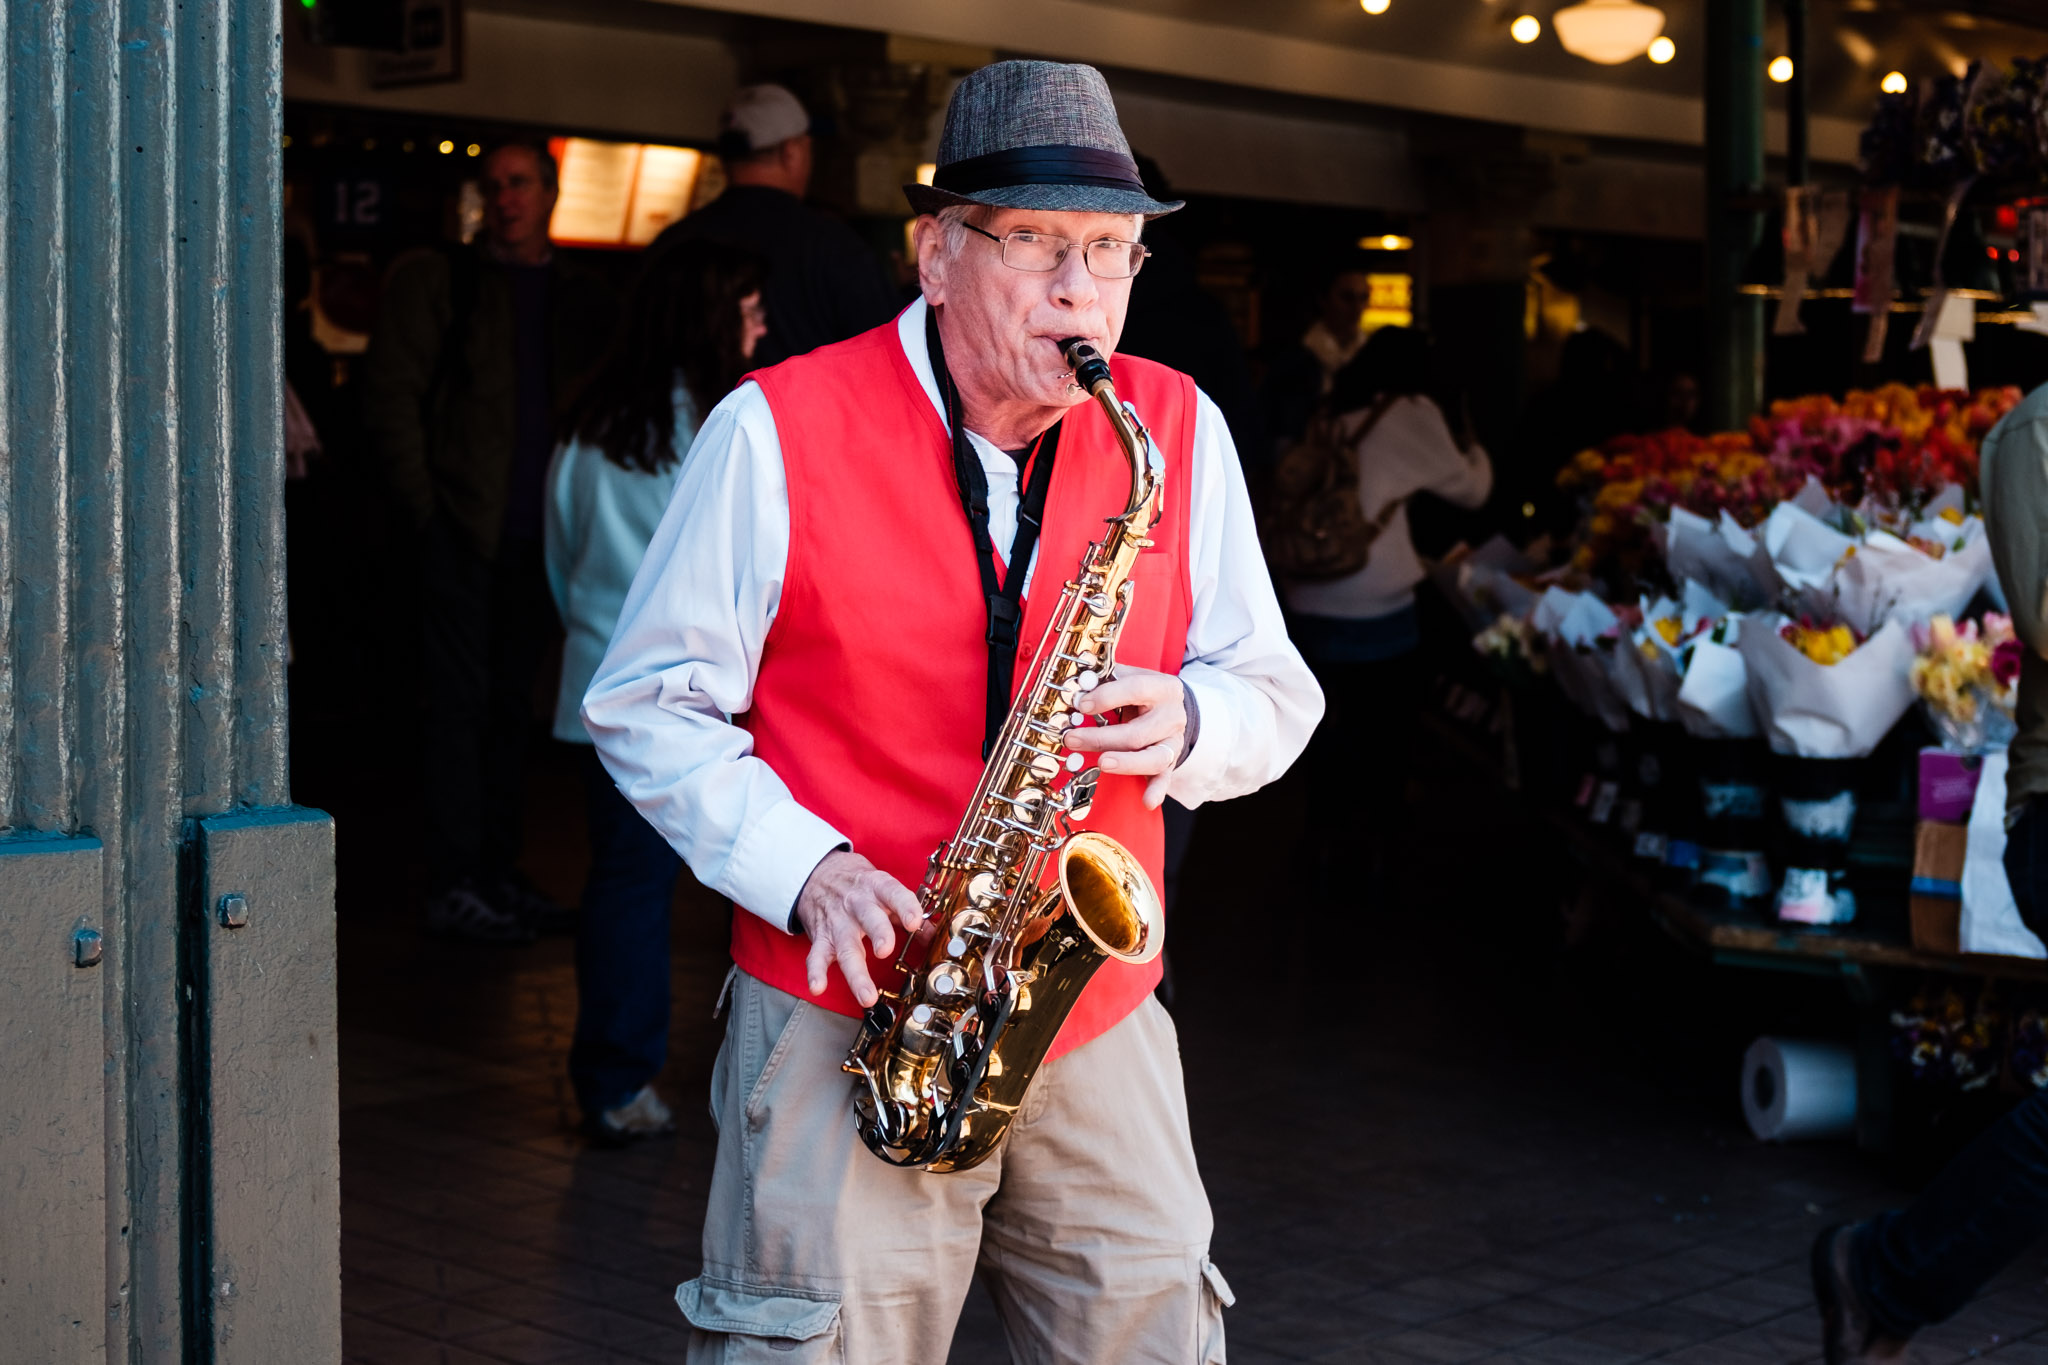 Brother Billy plays the sax at Pike Place Market. Seattle, WA. April 2017. (Photo by Danny Ngan.)